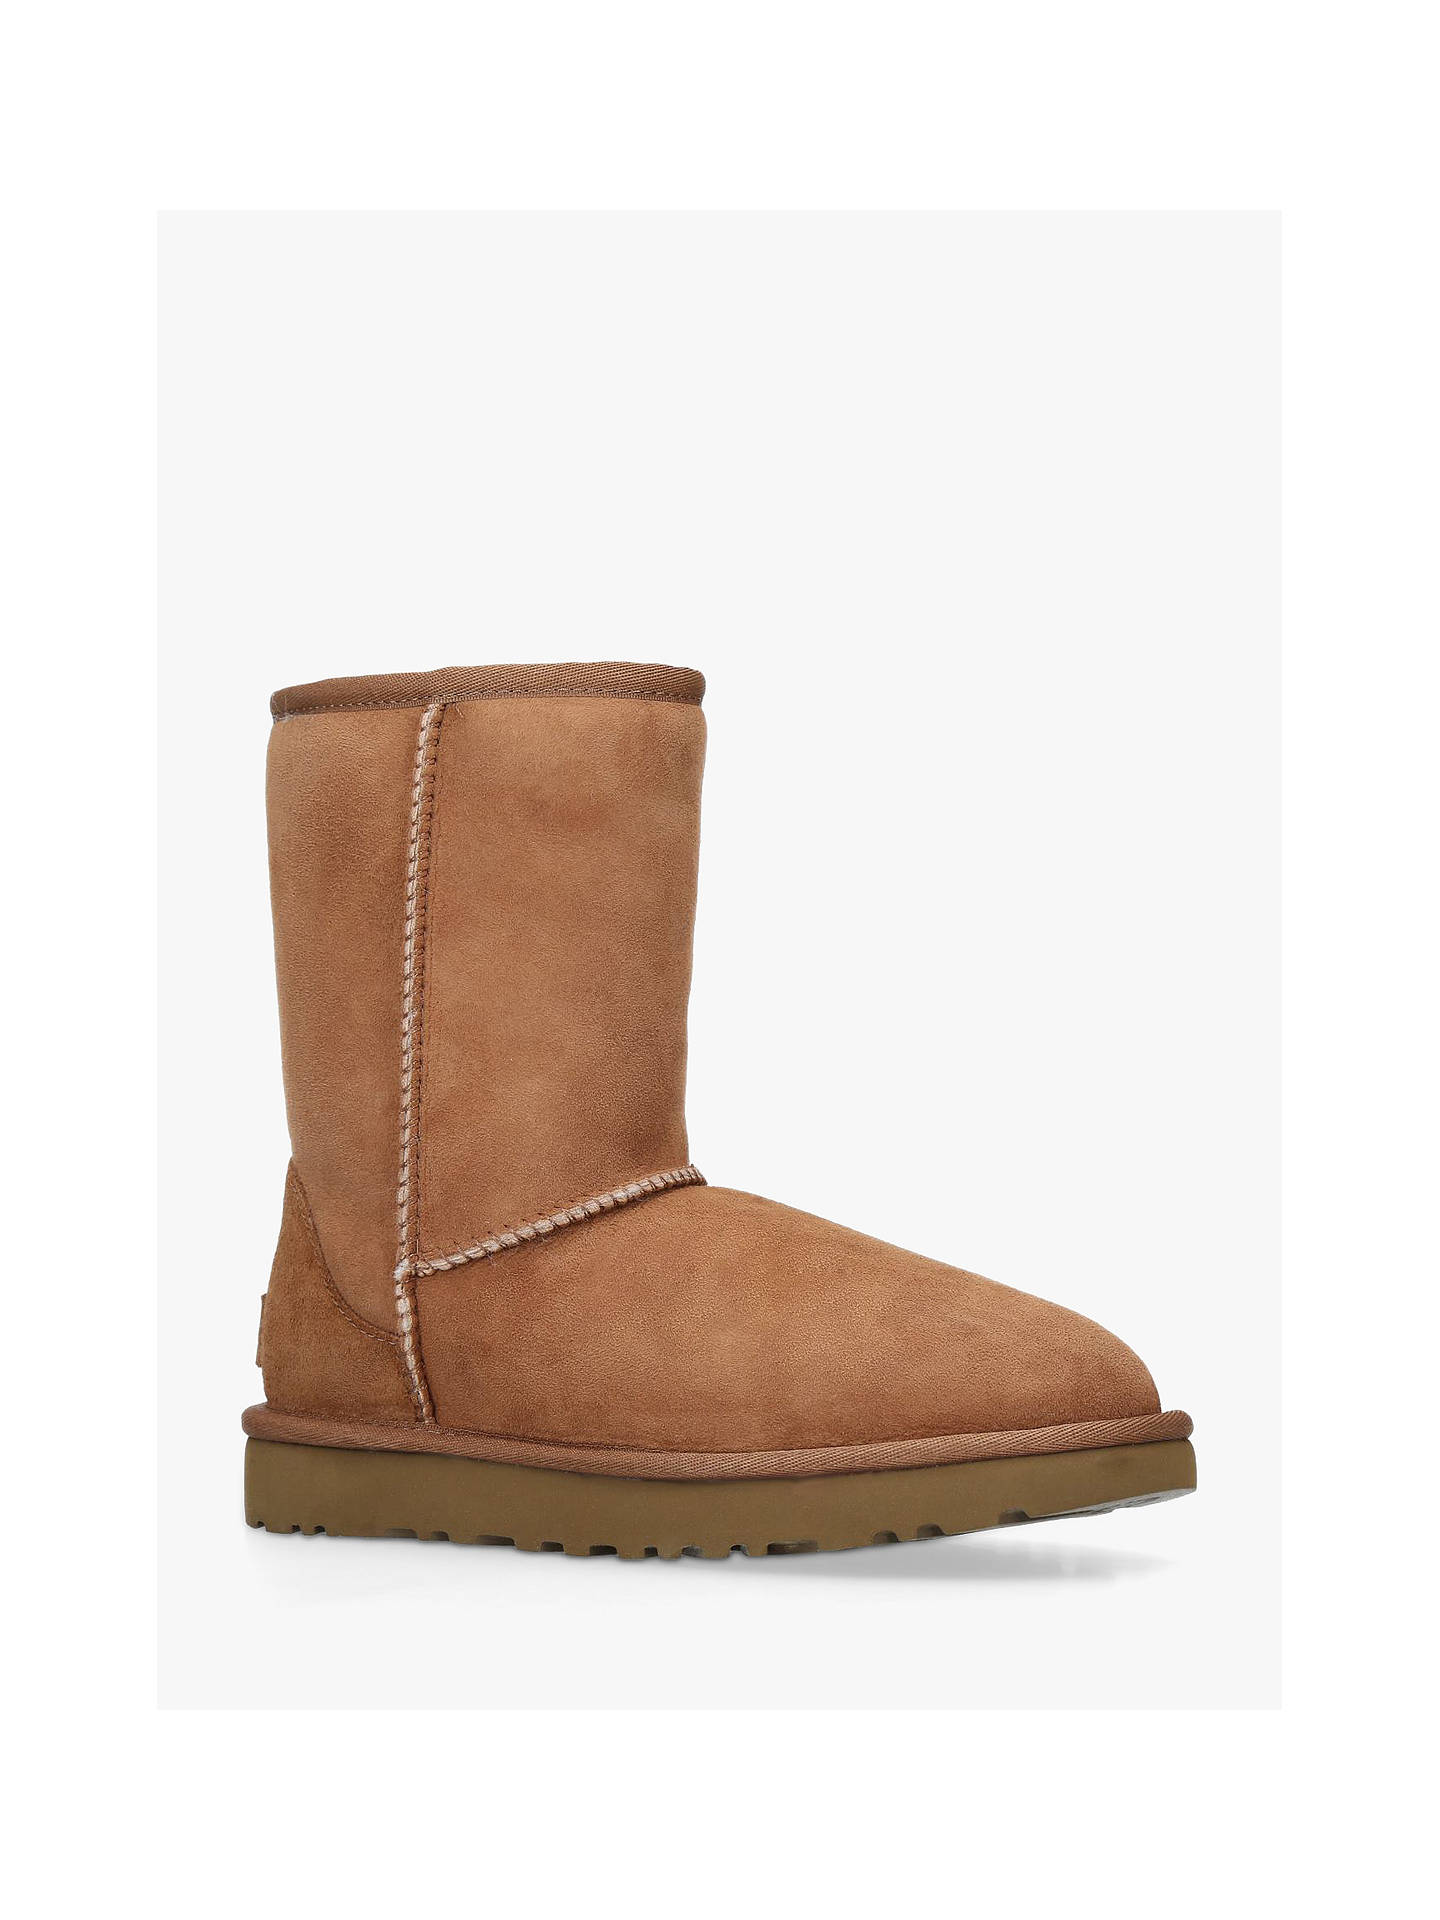 a0794831056 UGG Classic II Short Sheepskin Ankle Boots, Chestnut